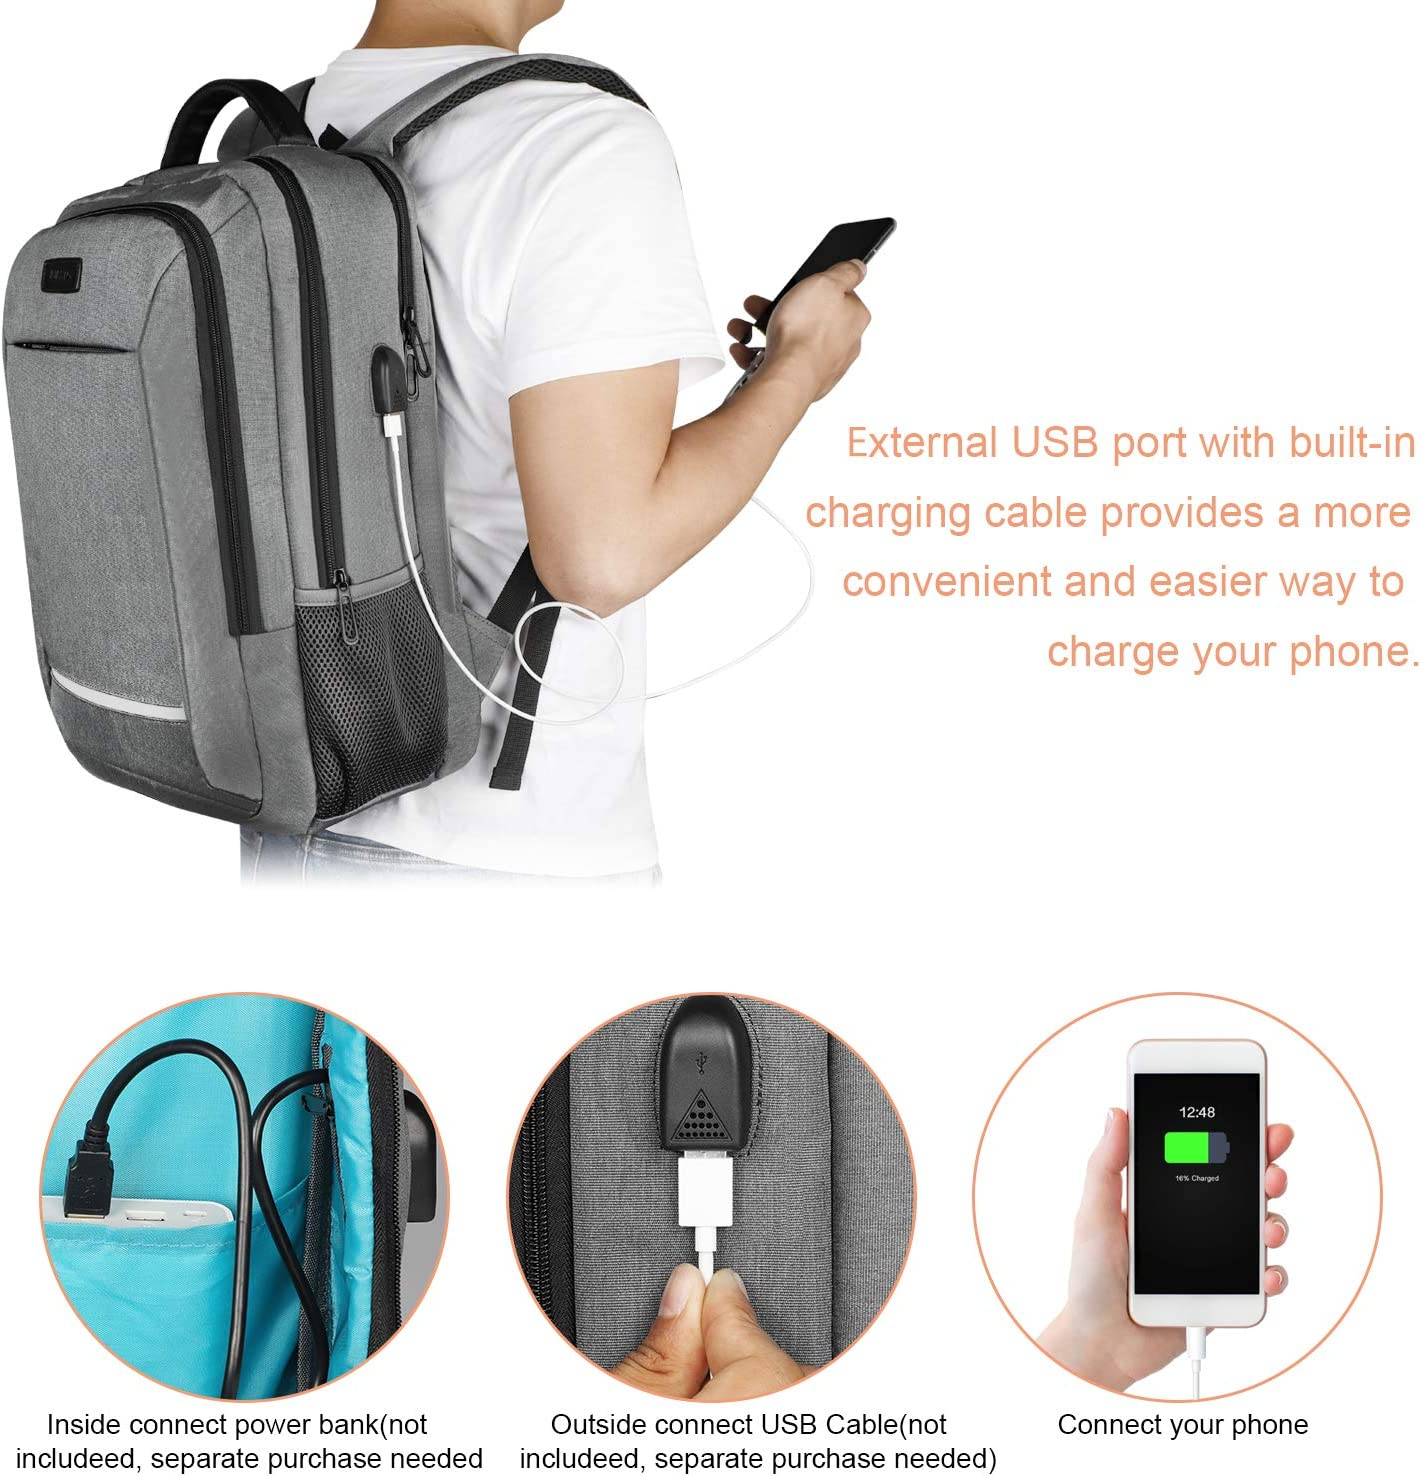 Laptop Backpack, JUKSTG Durable College School Laptop Bookbags With USB Charging Port, Business Computer Bag,Fits 15.6 Inch Laptop and Notebook, Grey